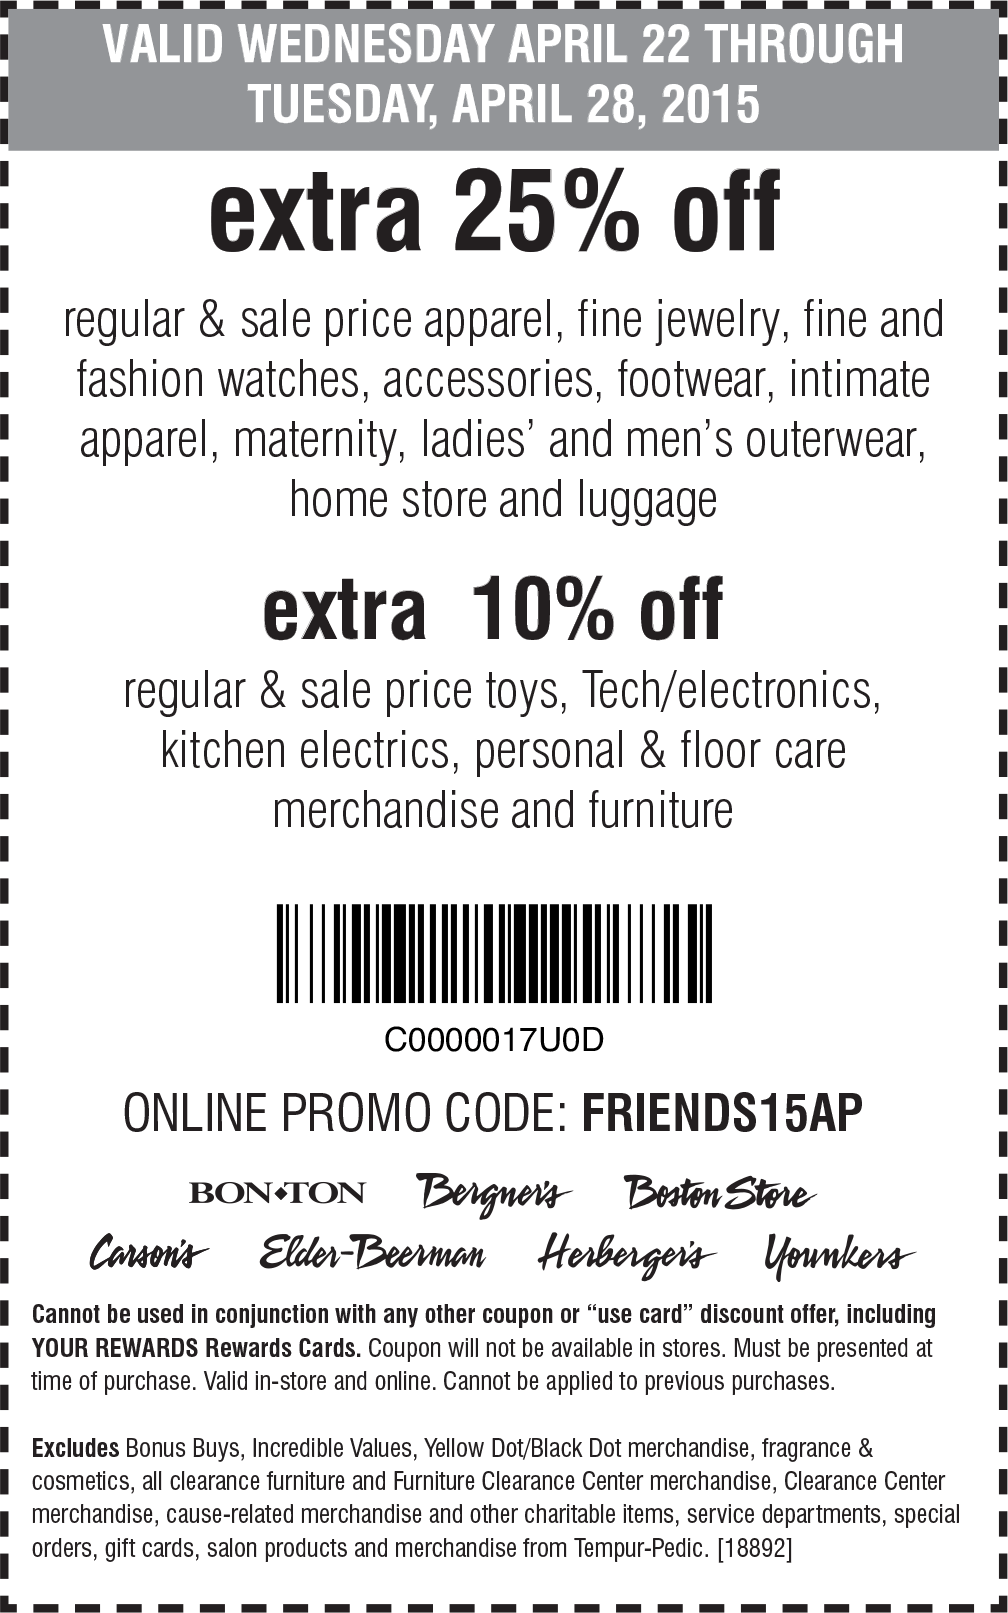 Bon Ton Coupon December 2016 Extra 25% off at Carsons, Bon Ton & sister stores, or online via promo code FRIENDS15AP